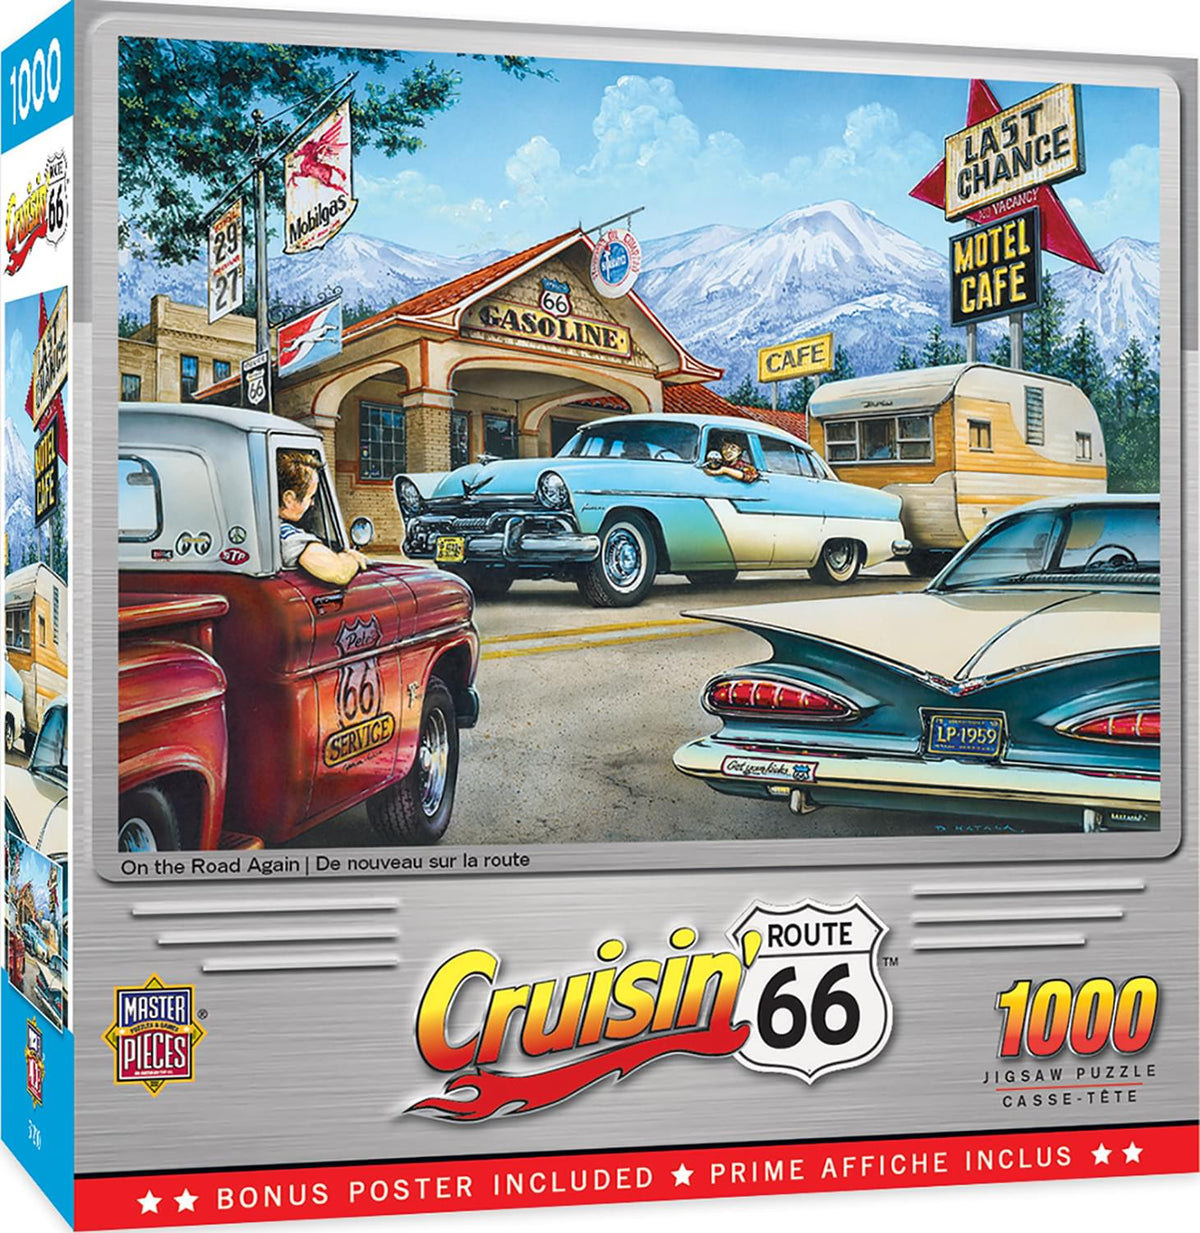 Cruisin On the Road Again 1000 Piece Jigsaw Puzzle